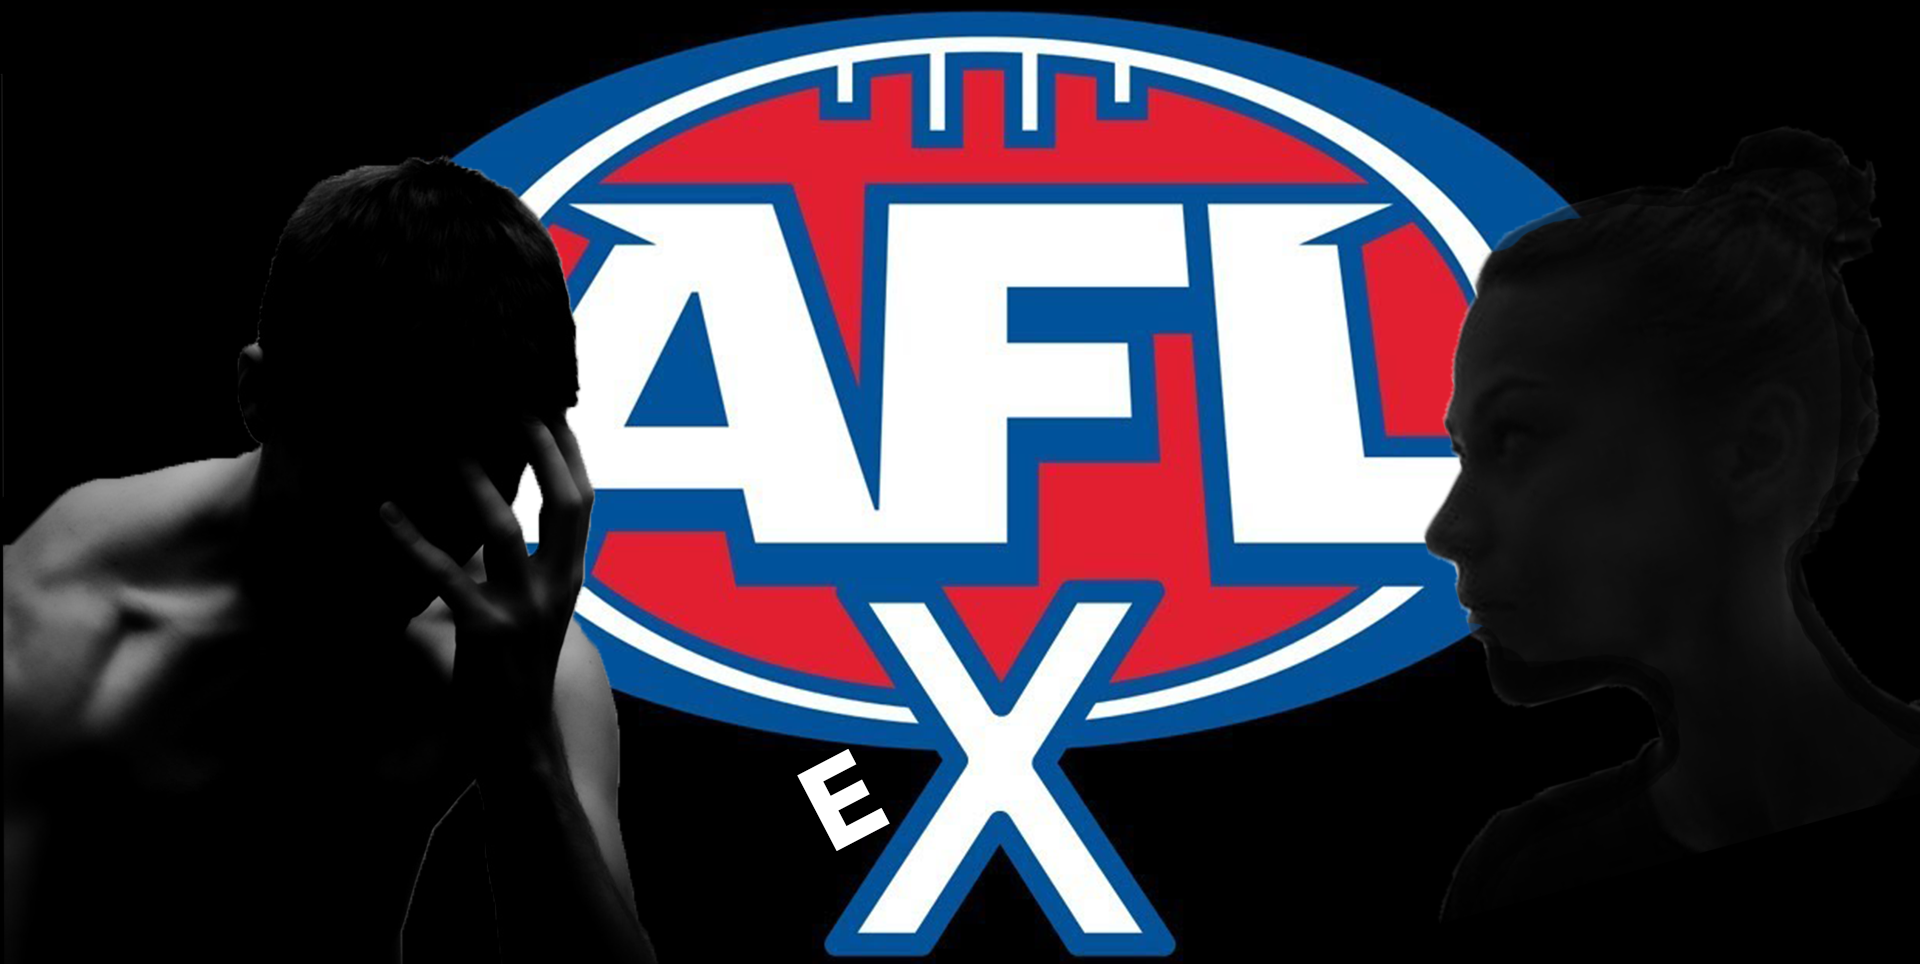 AFL Ex - plans for revamped preseason competition where players face off against teams of former lovers.